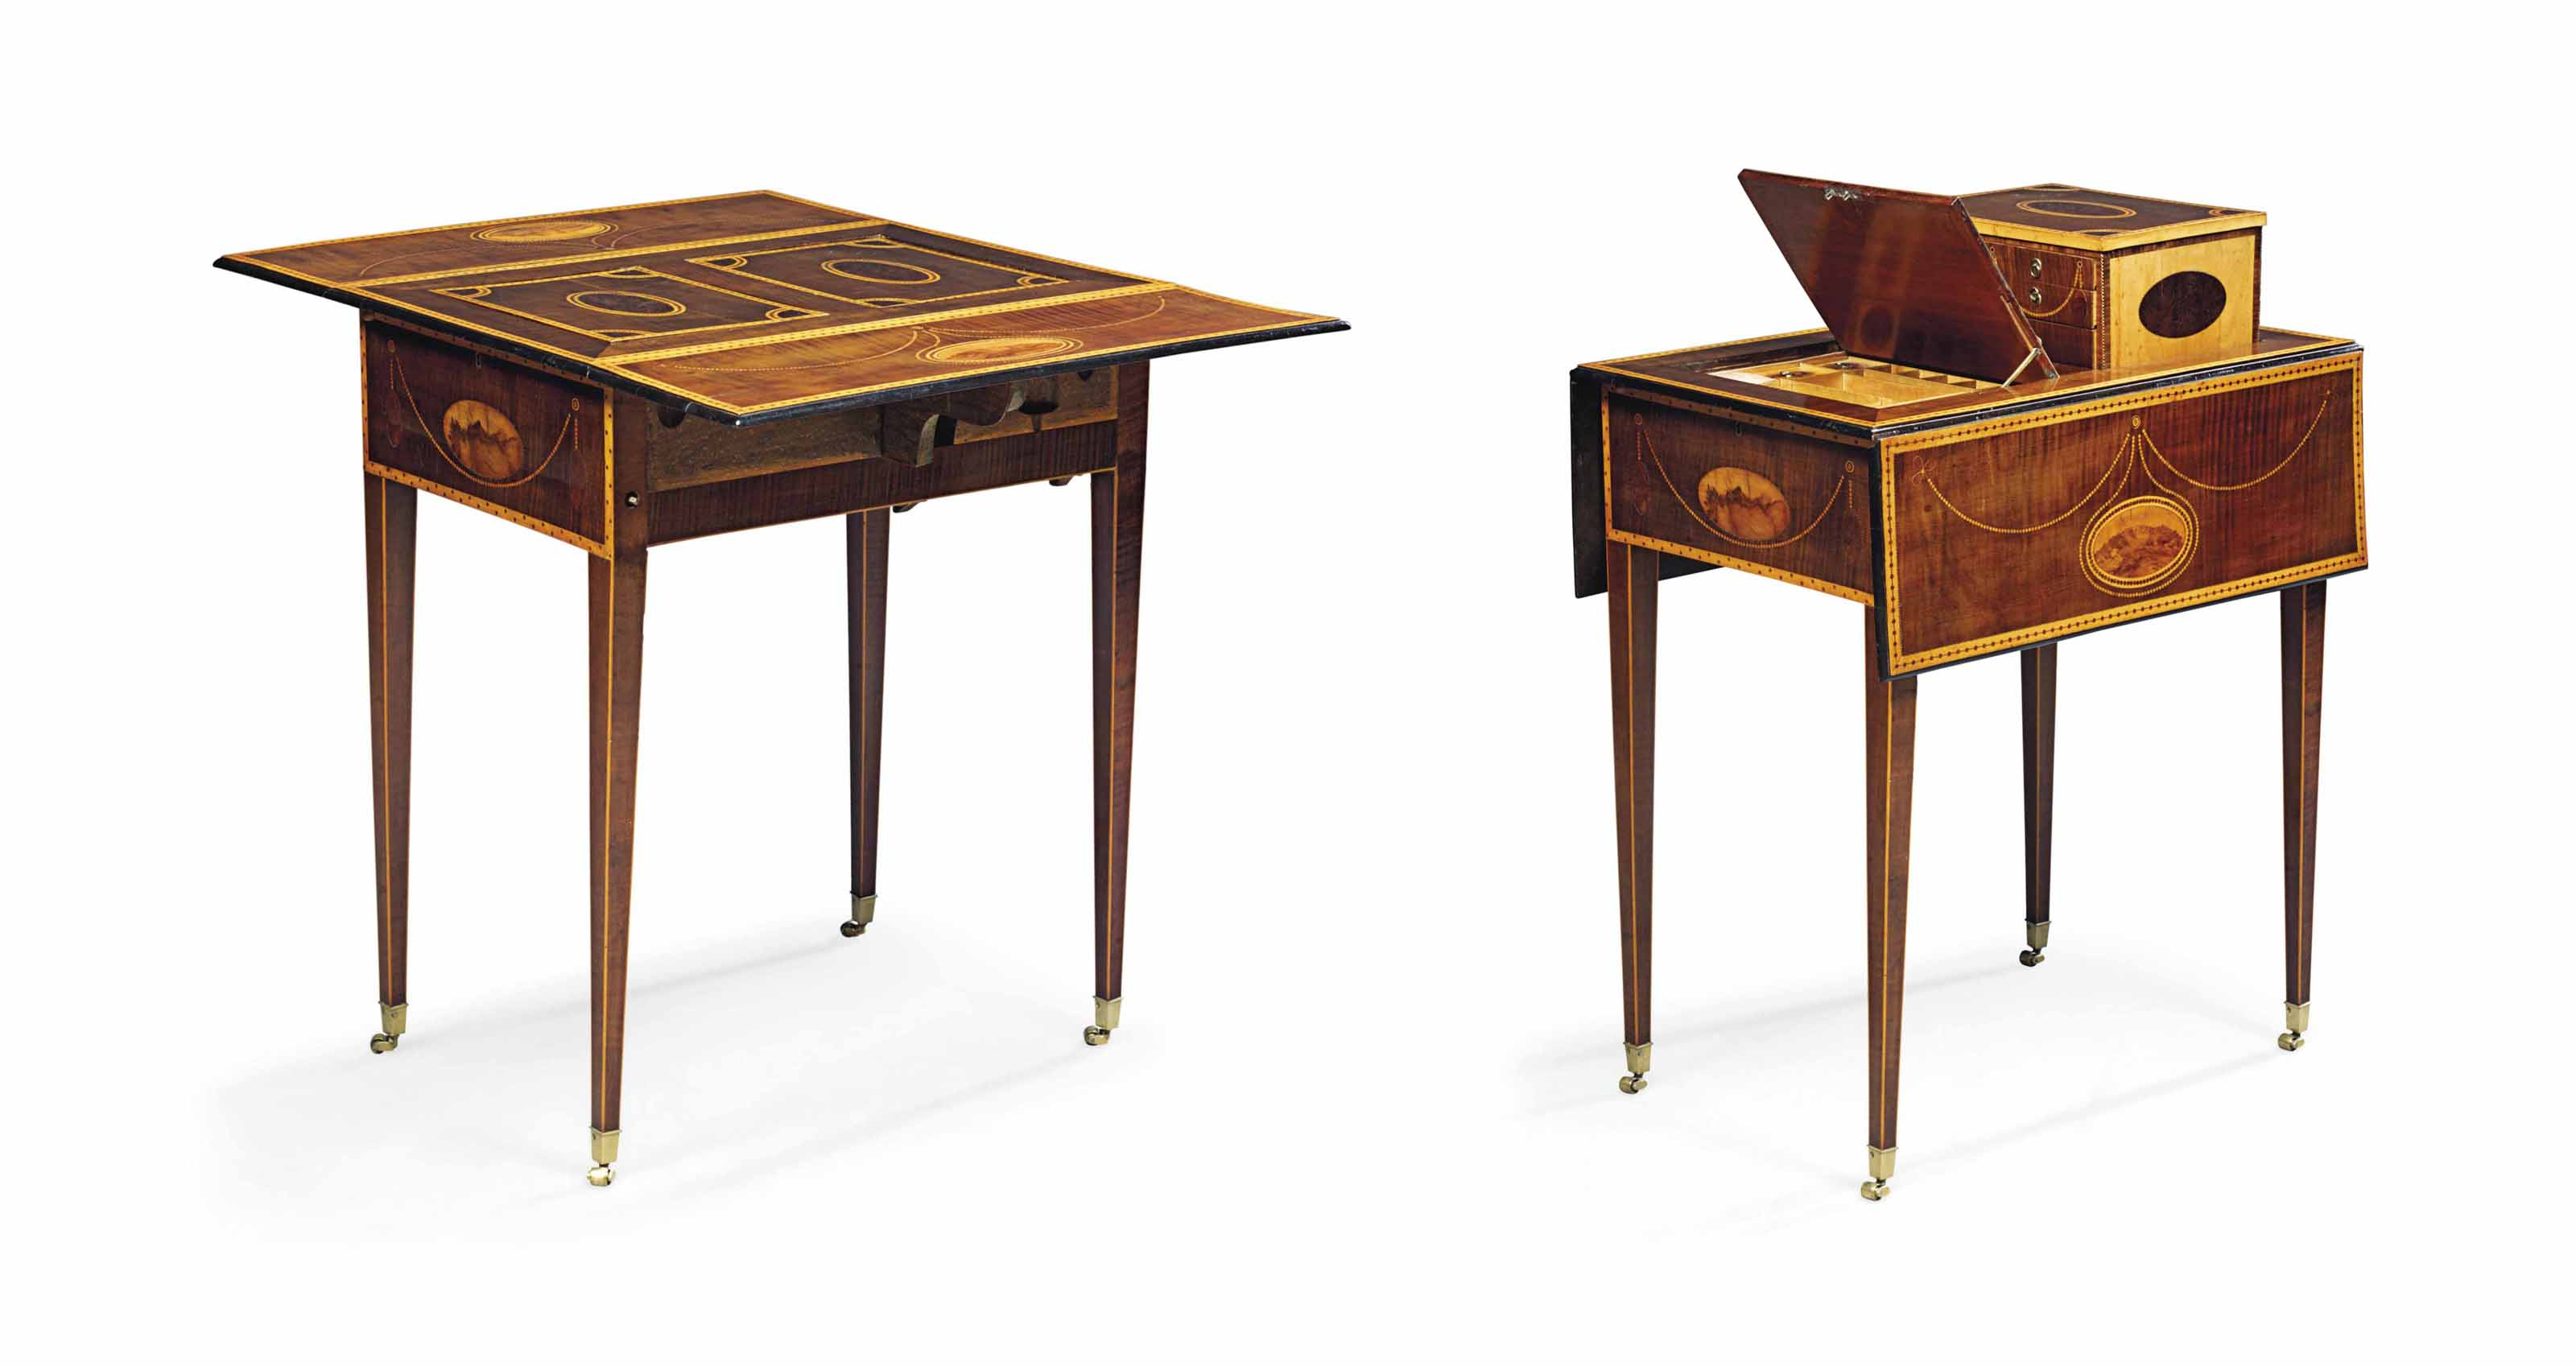 A GEORGE III HAREWOOD, BURR-YEWWOOD AND MARQUETRY METAMORPHIC PEMBROKE TABLE